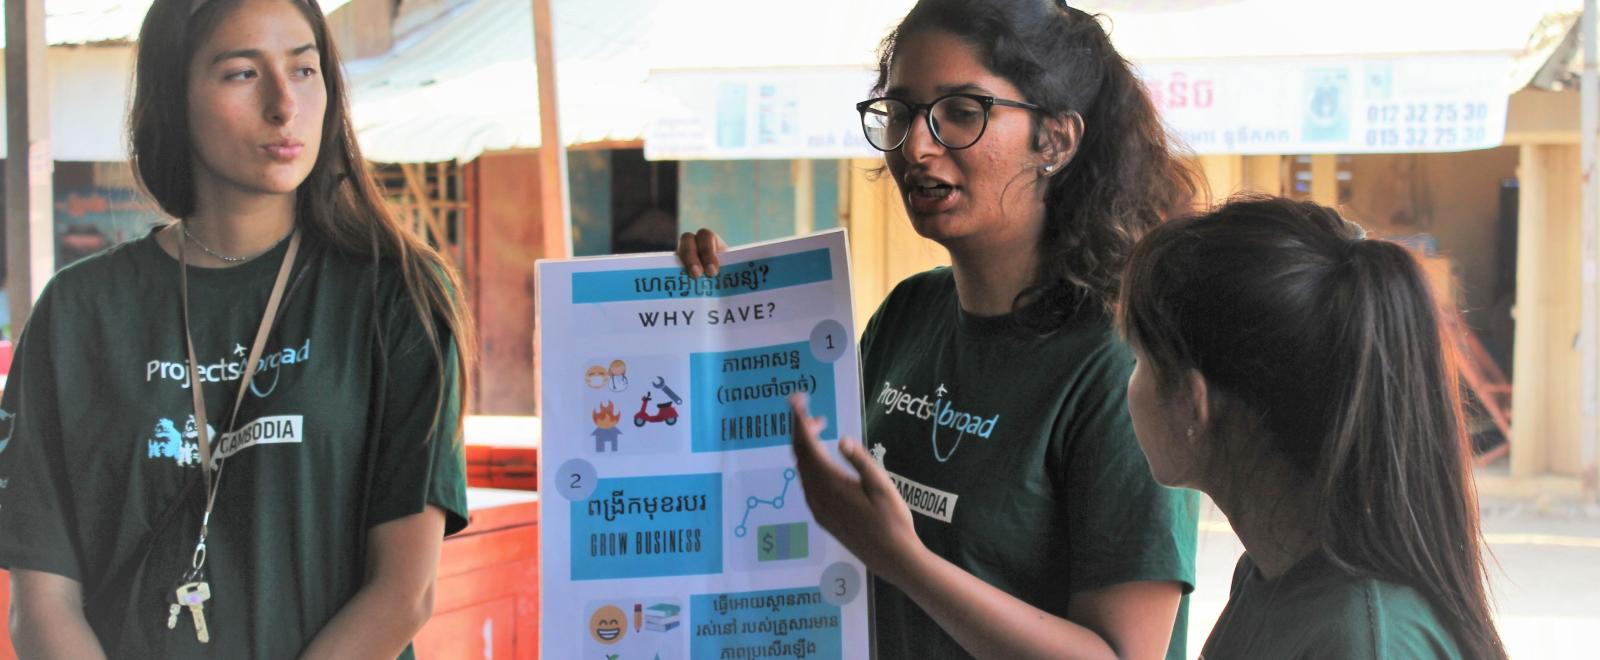 A Micro-finance intern in Cambodia explains the importance of building savings.